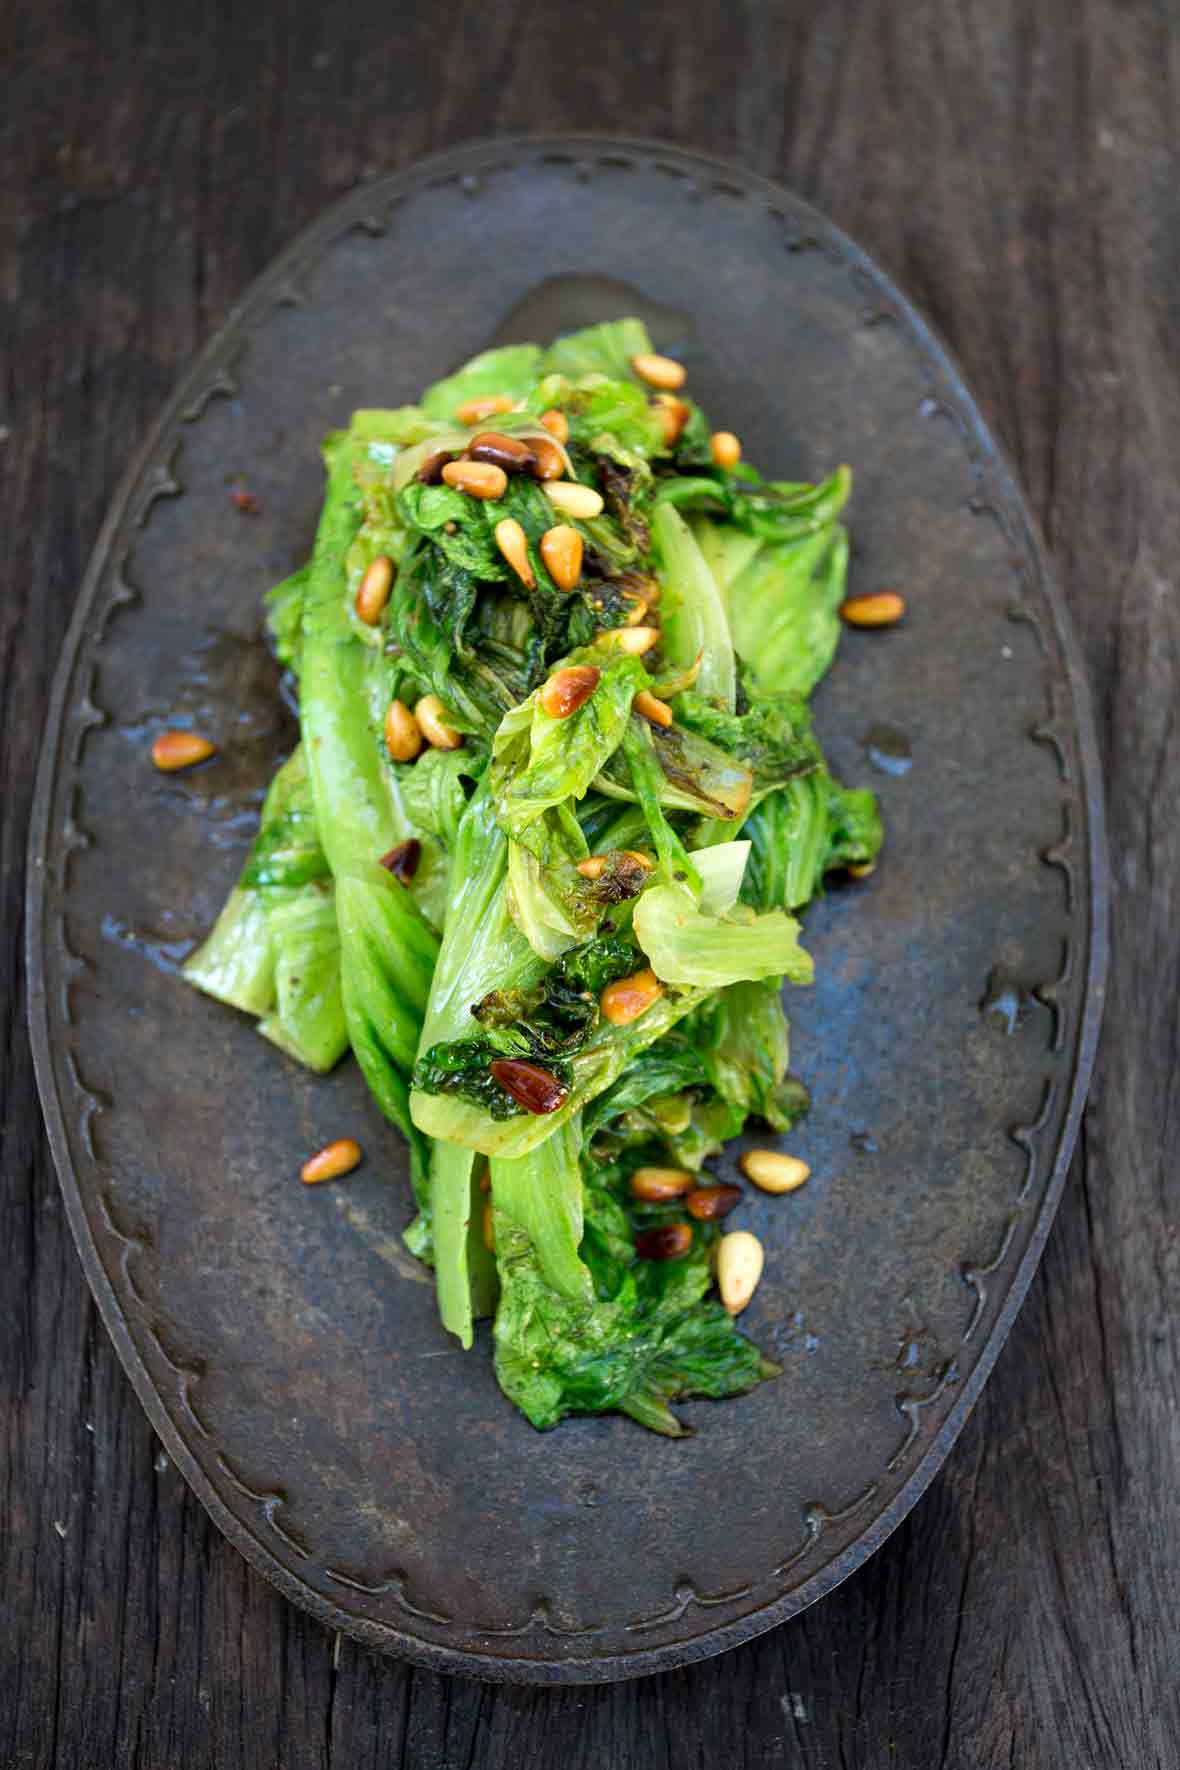 An iron plate with a pile of sautéed romaine lettuce topped with toasted pine nuts